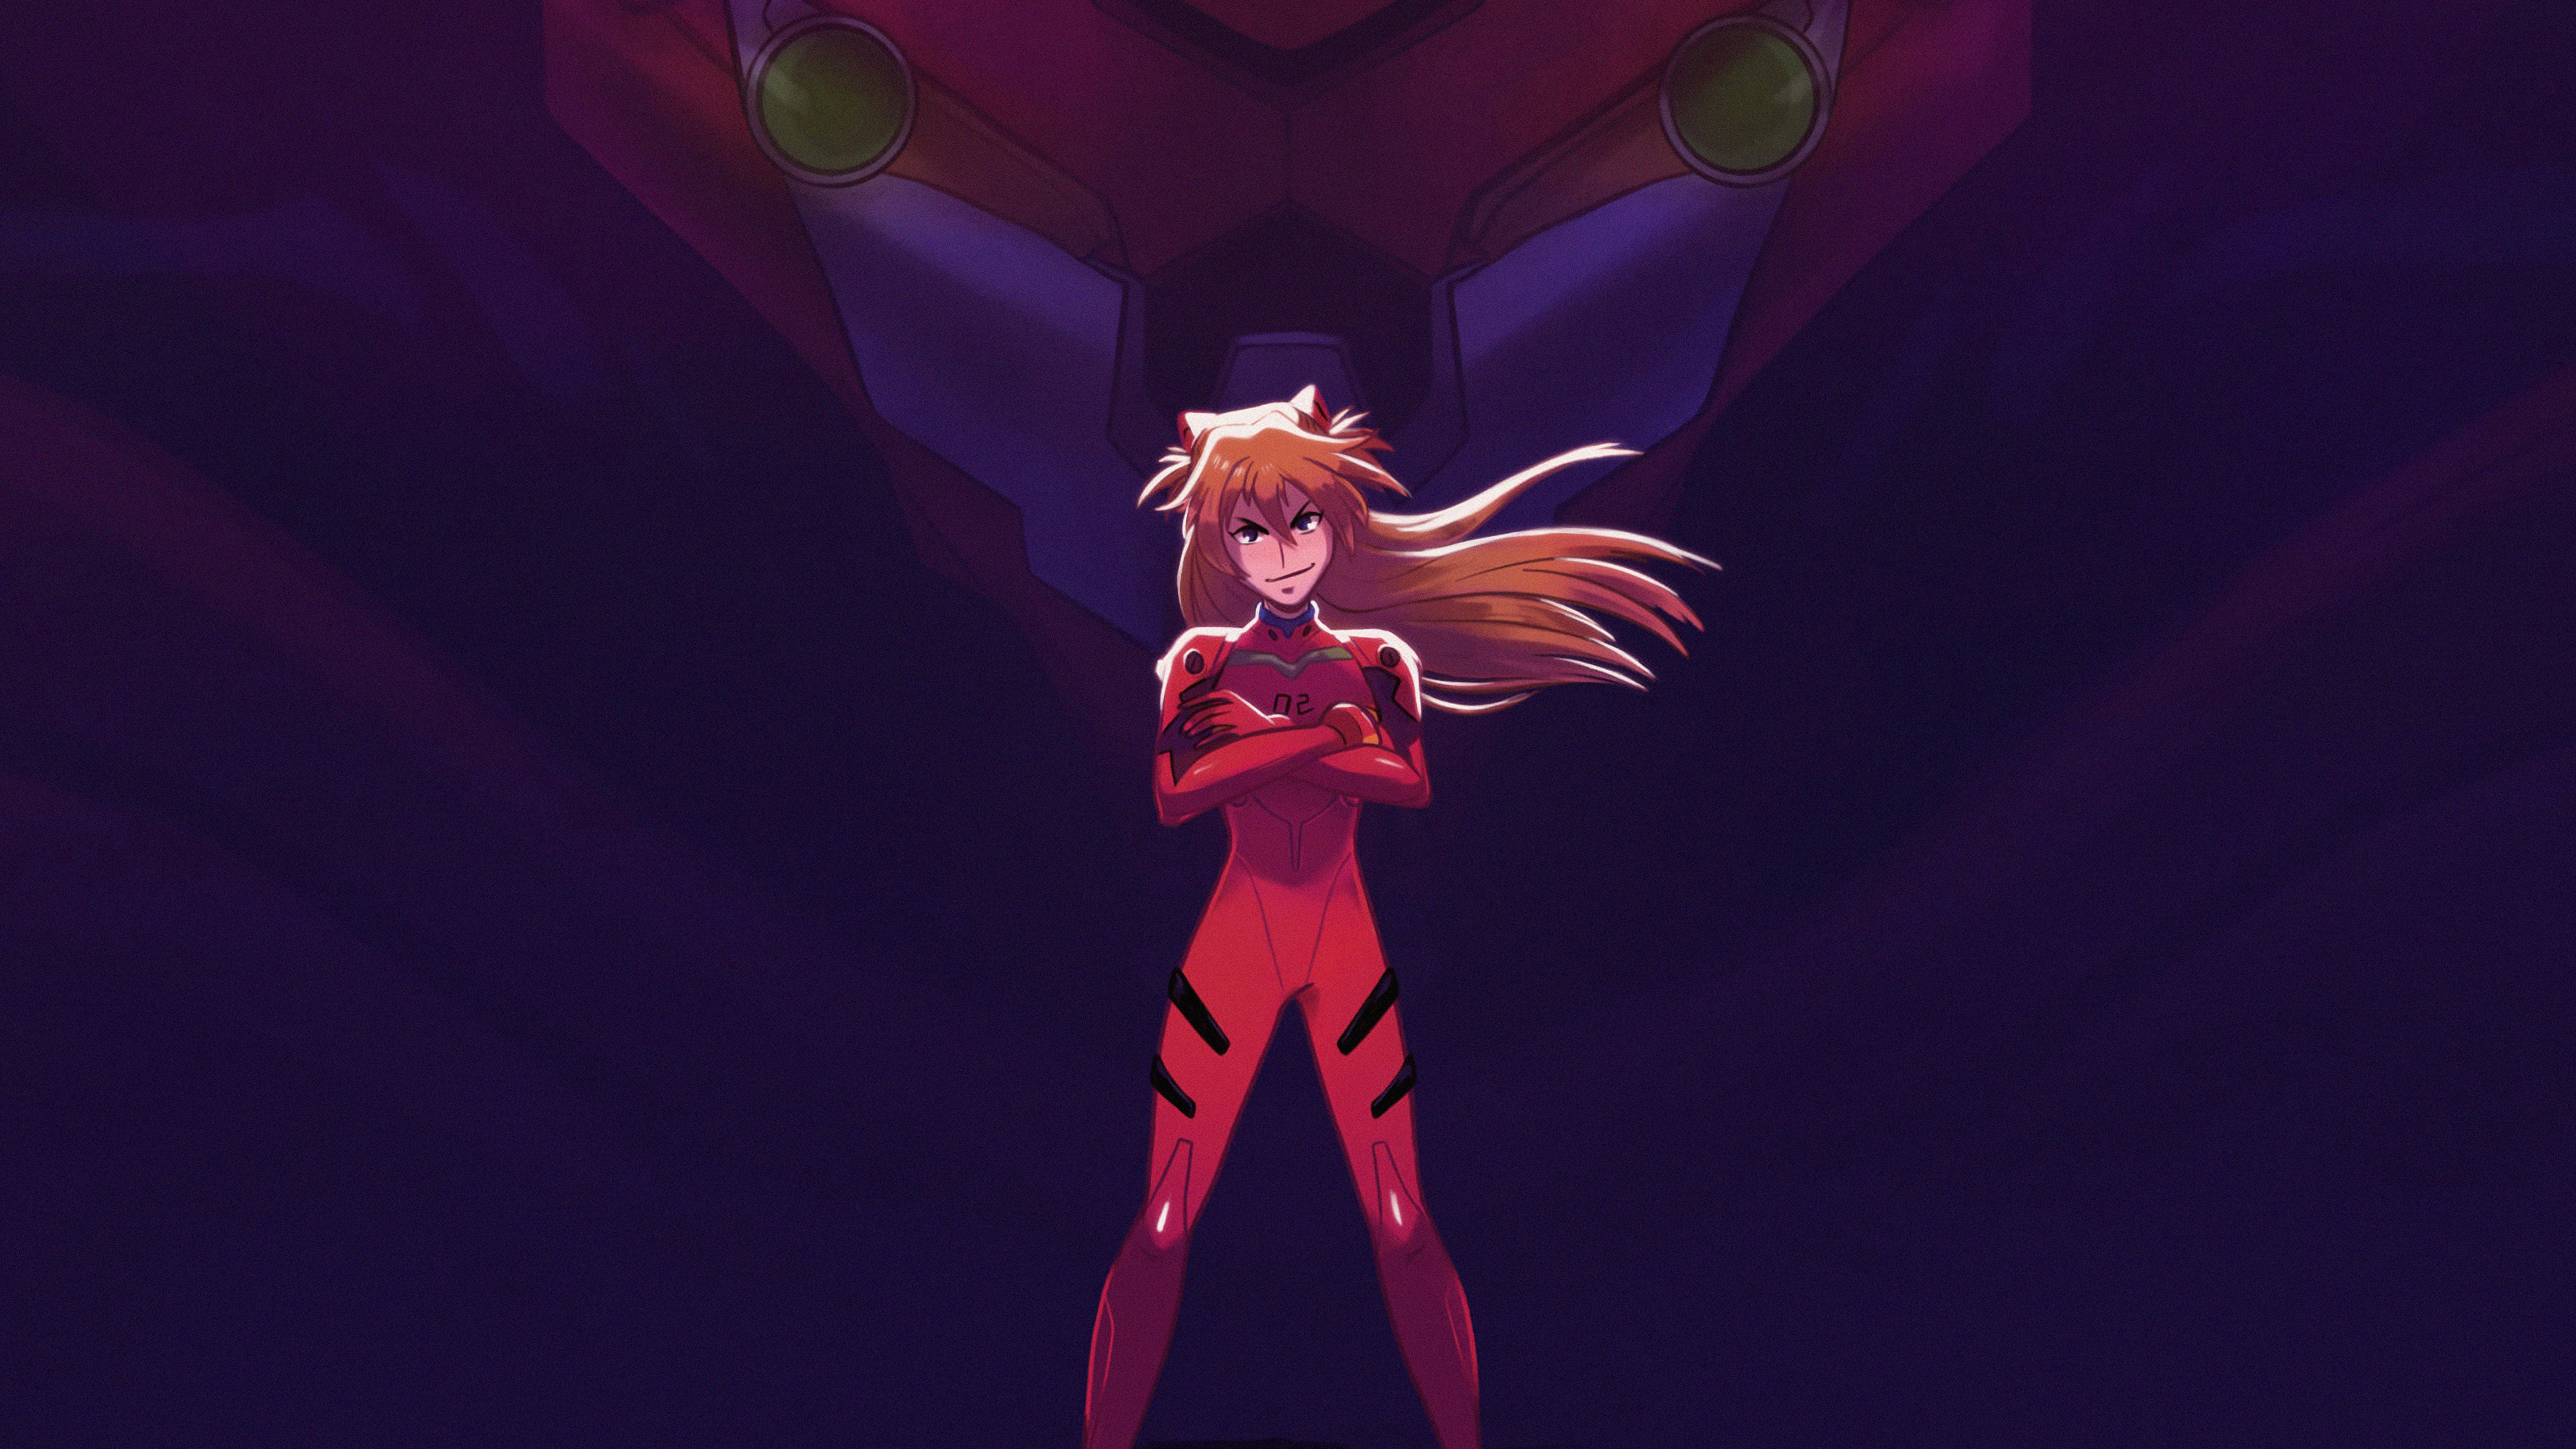 asuka and her unit 02 from evangelion 1578253813 - Asuka And Her Unit 02 From Evangelion -